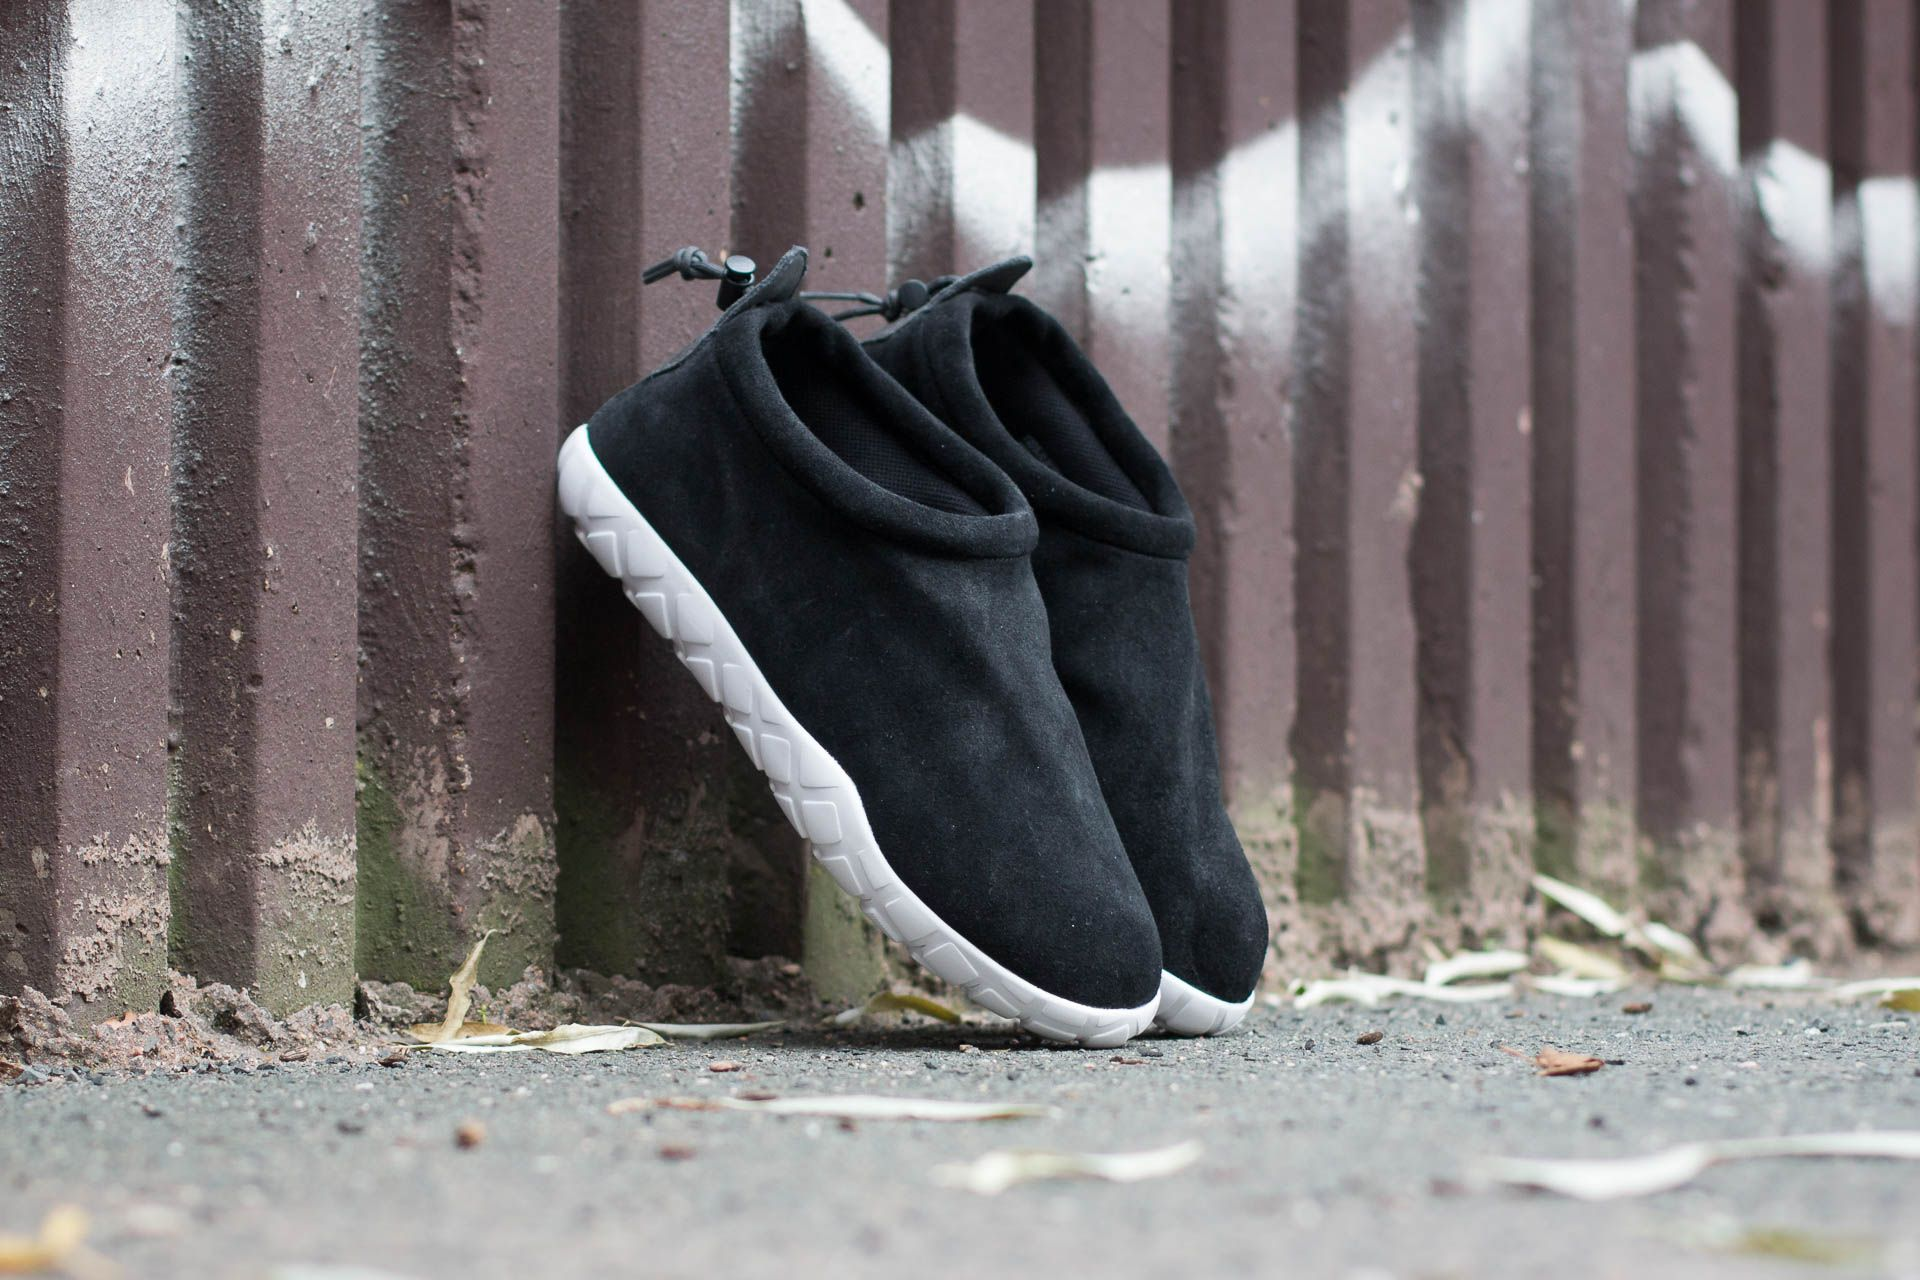 Ultra WhiteFootshop Air Moc Anthracite Nike Black qLzMGSjUVp